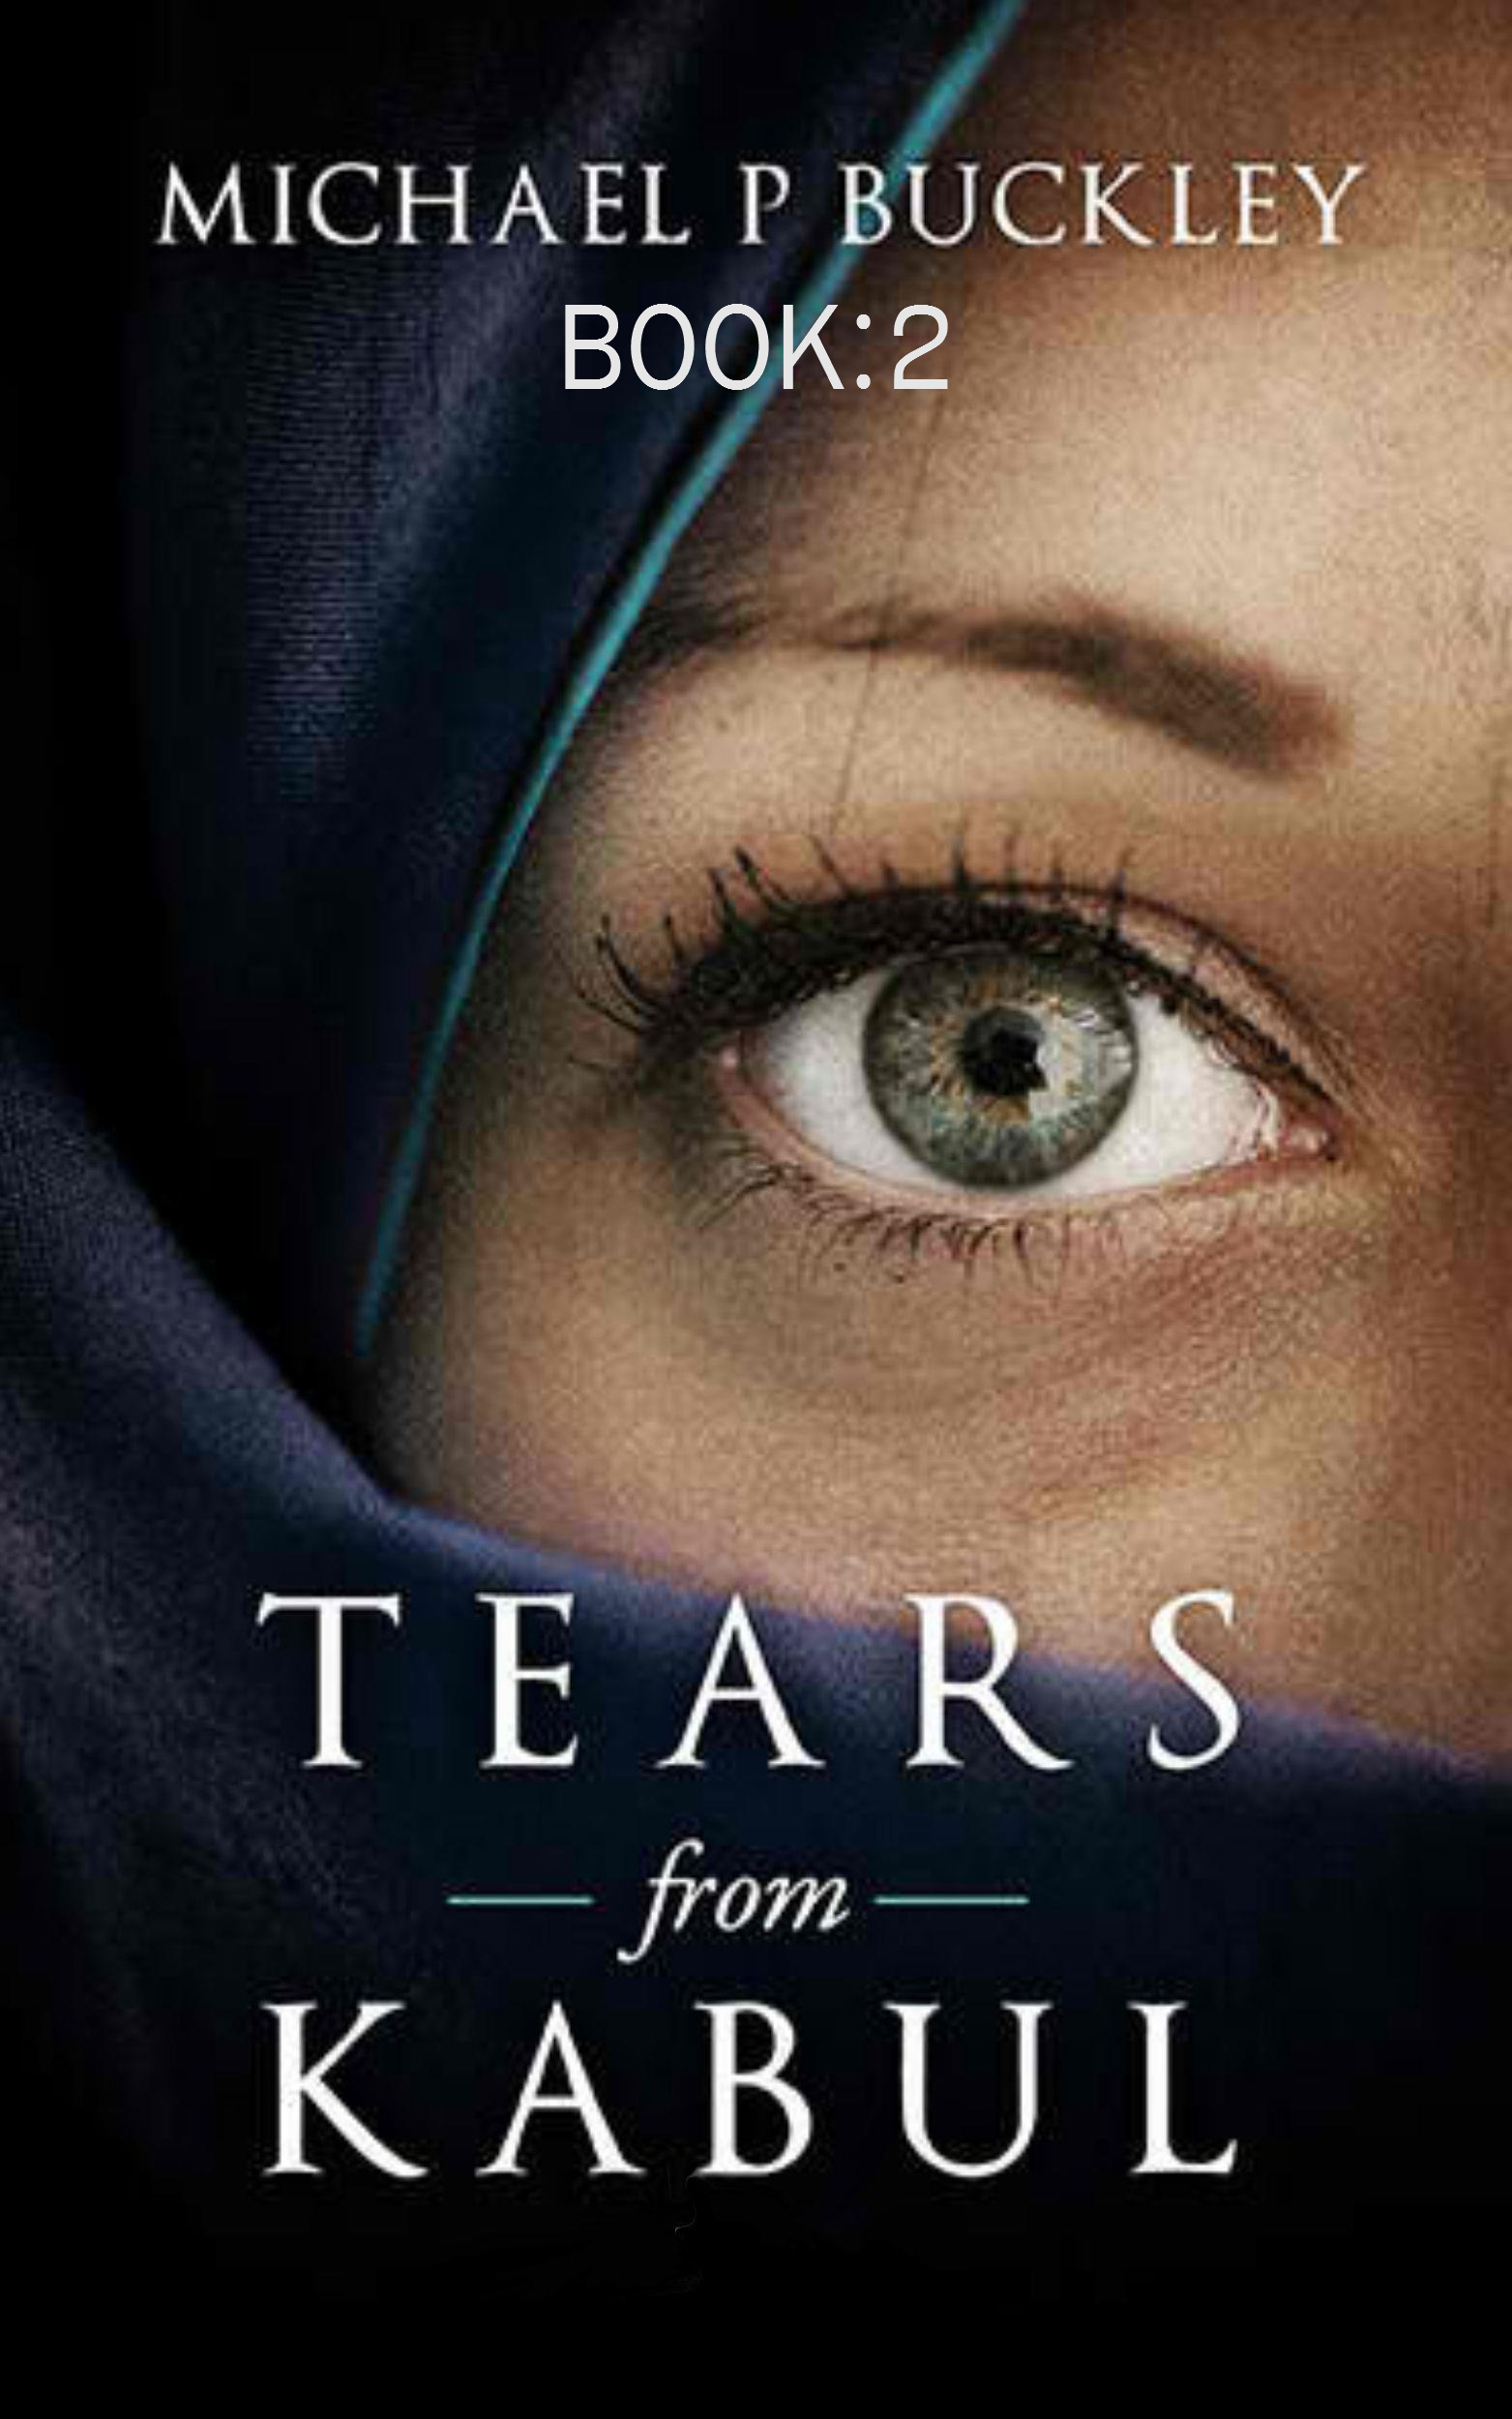 Michael P Buckley - Tears from Kabul Book 2